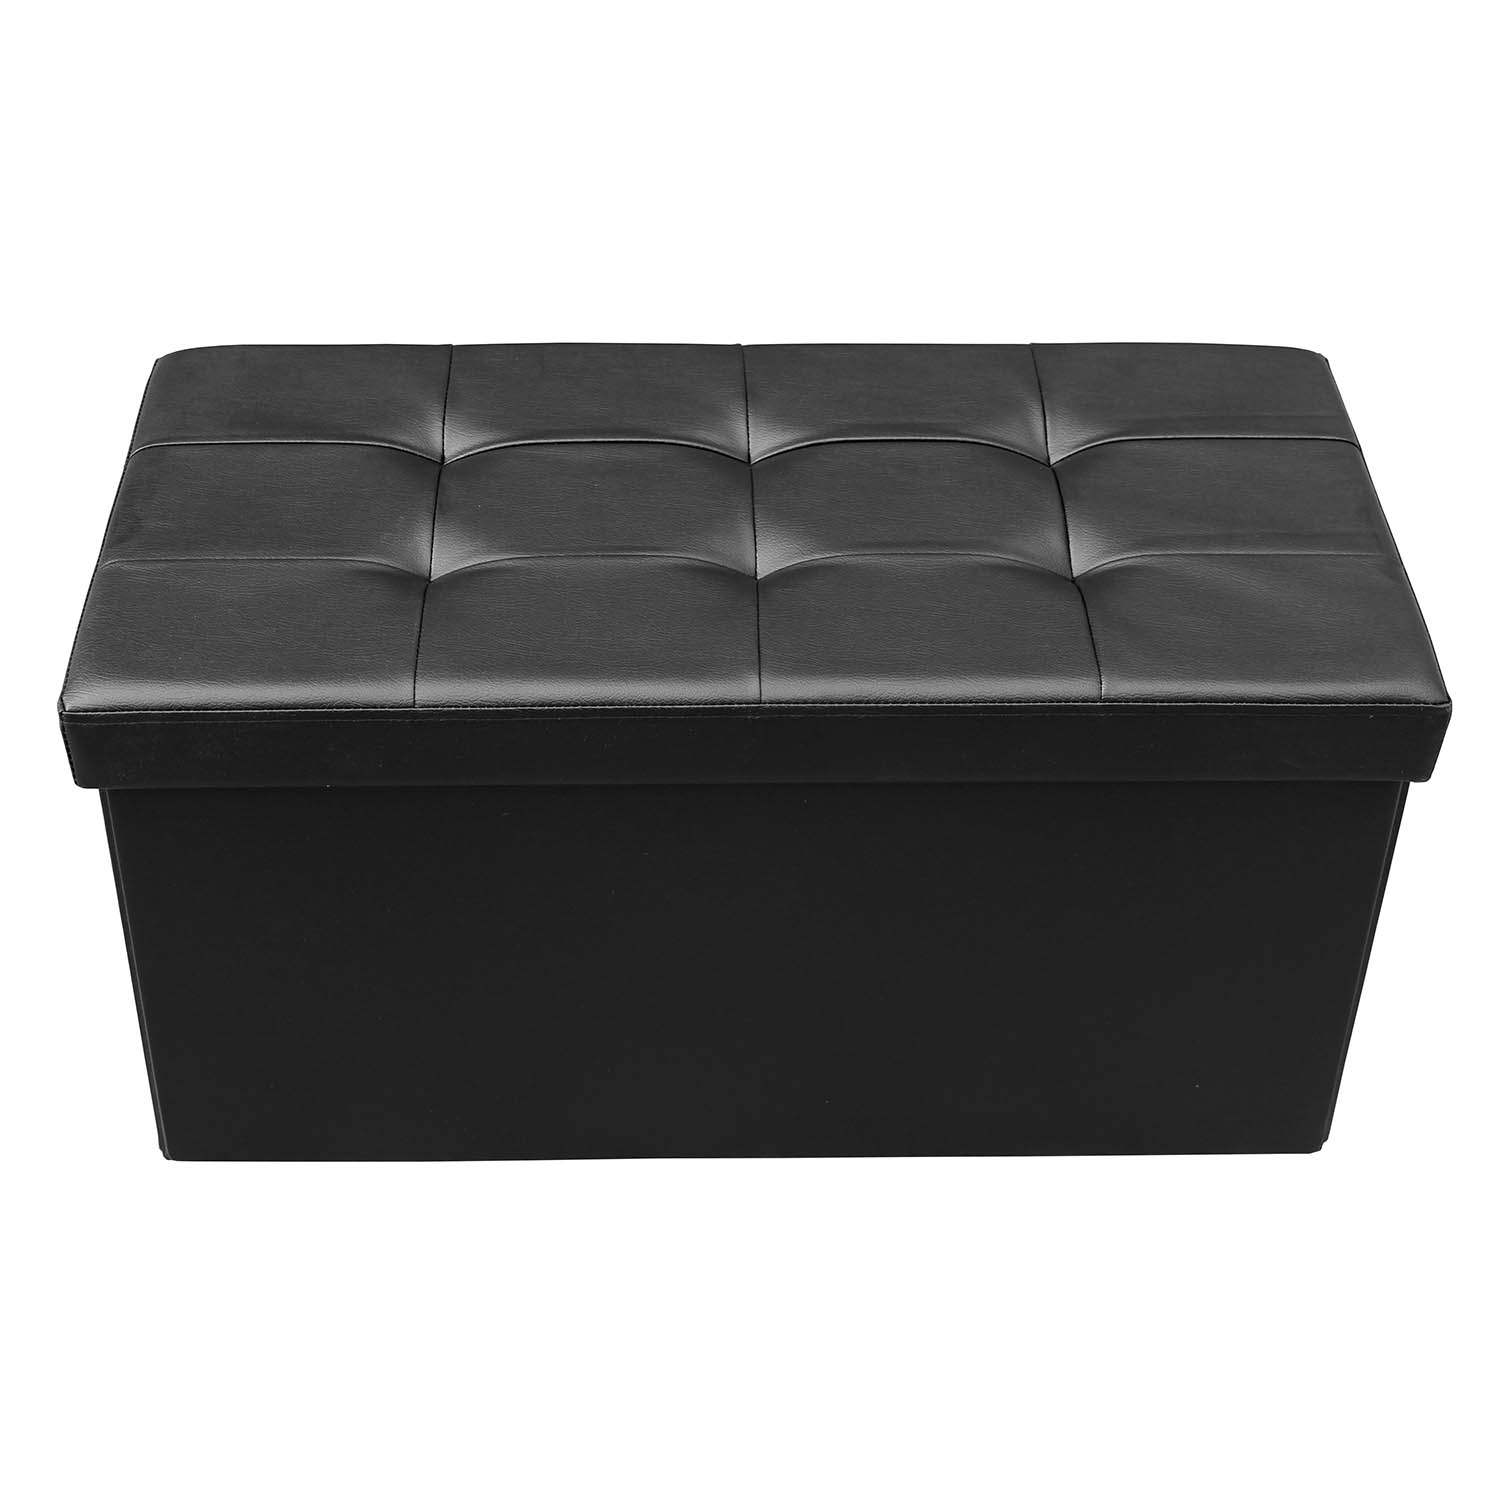 deco in paris banquette coffre pliable noir steven. Black Bedroom Furniture Sets. Home Design Ideas